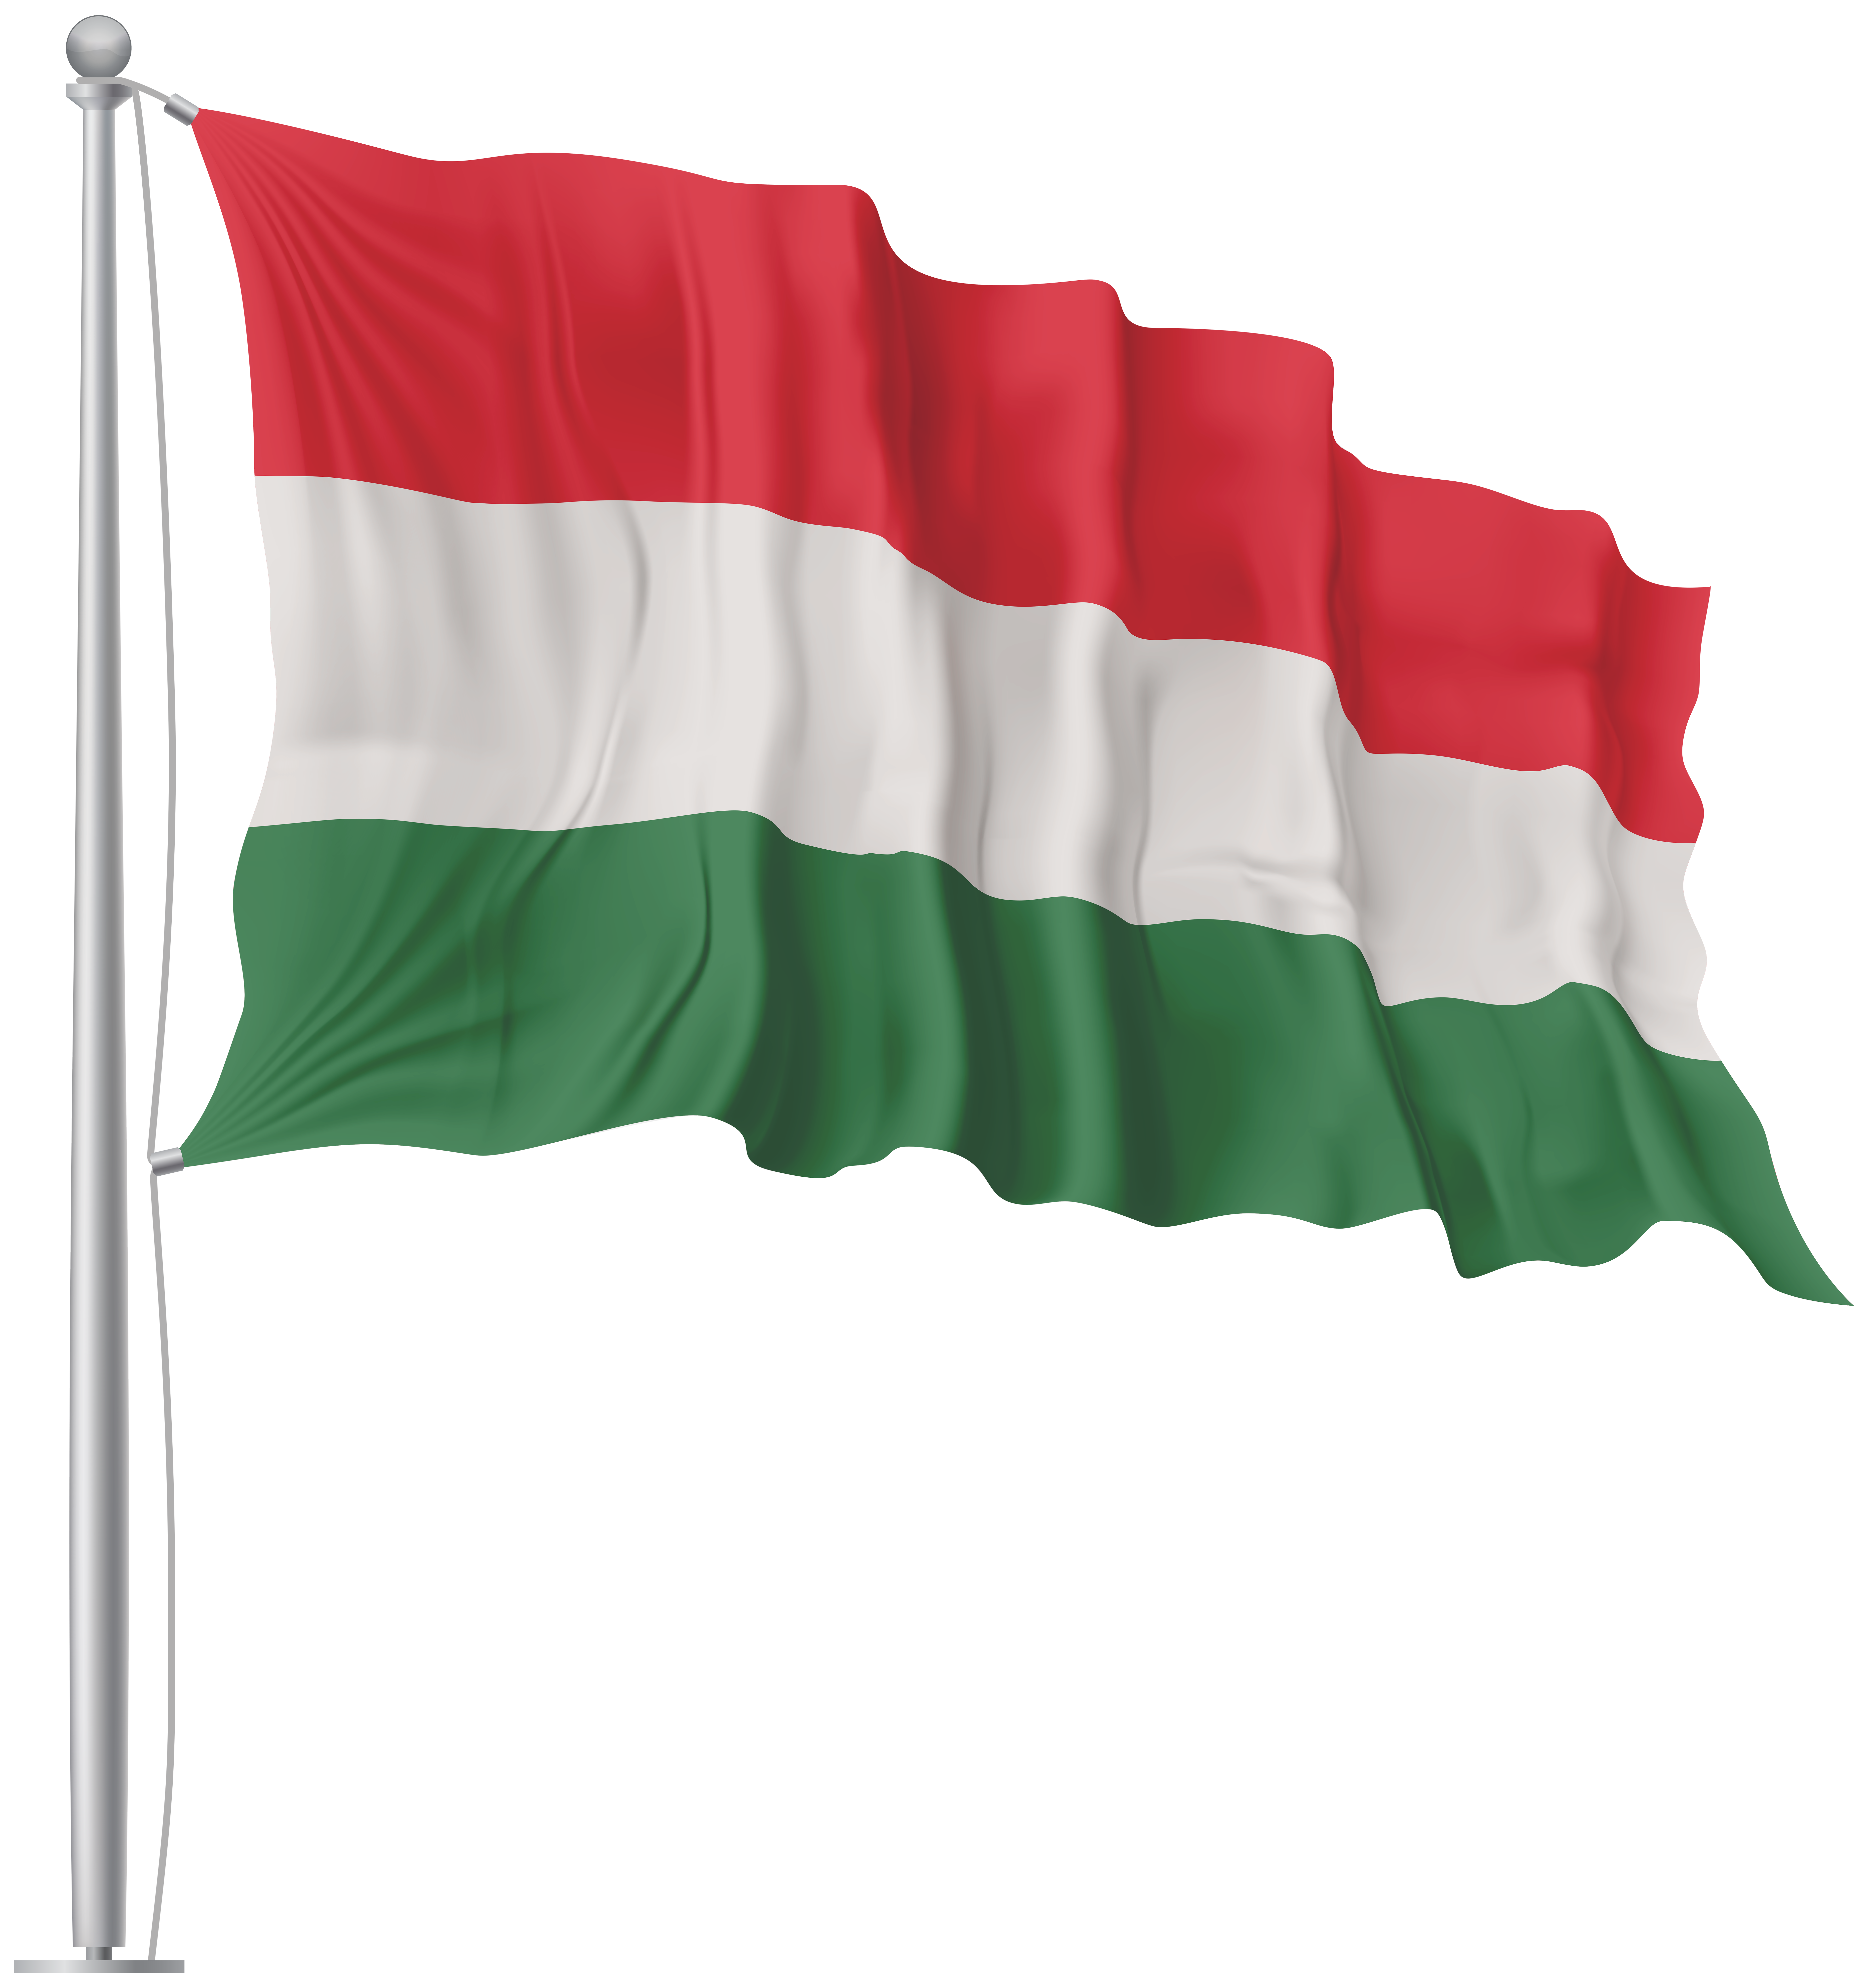 Hungary Waving Flag PNG Image.